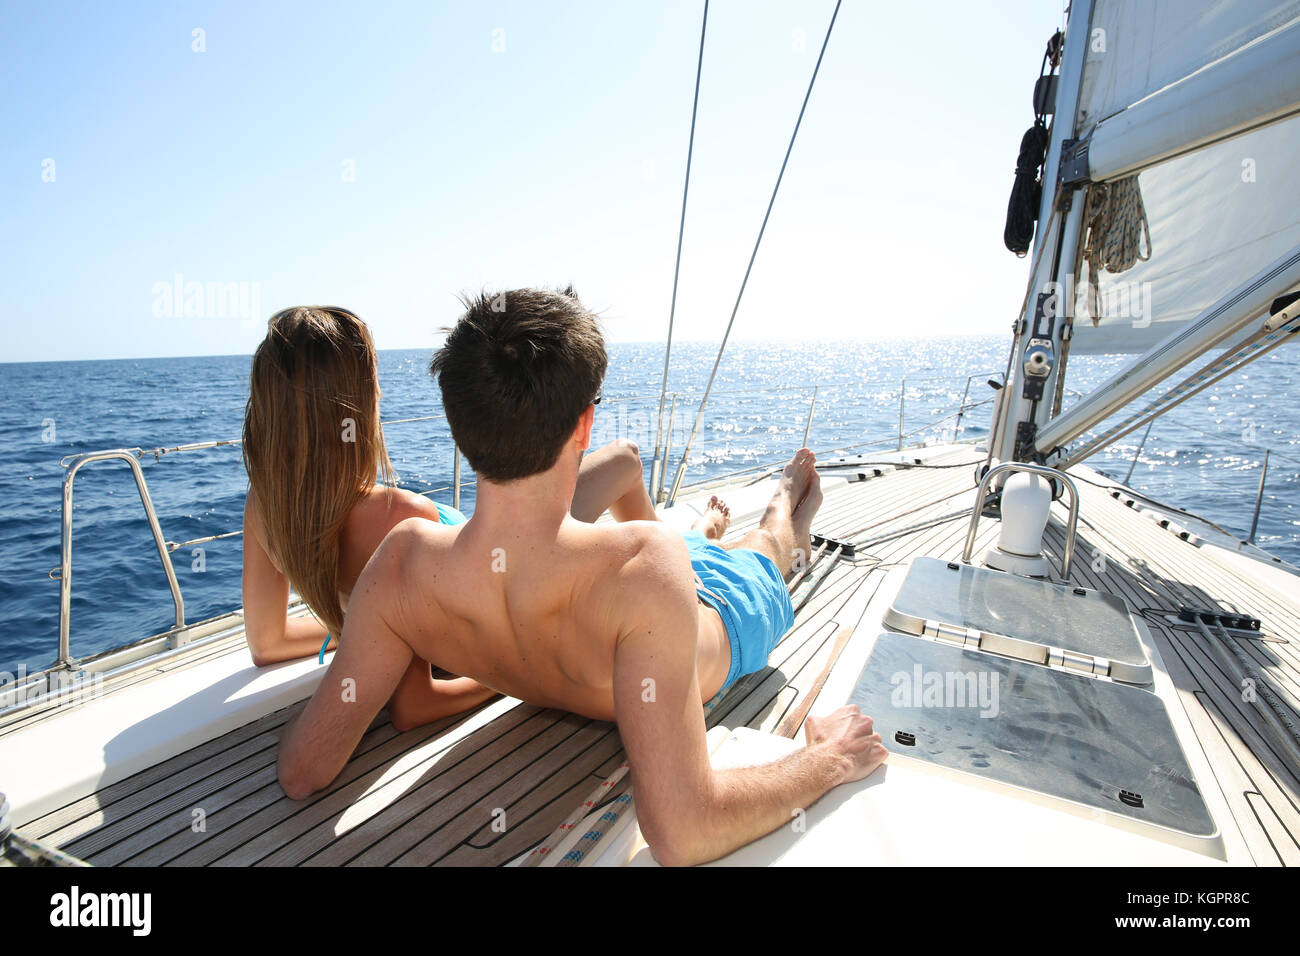 Lucky couple relaxing on sailboat deck - Stock Image